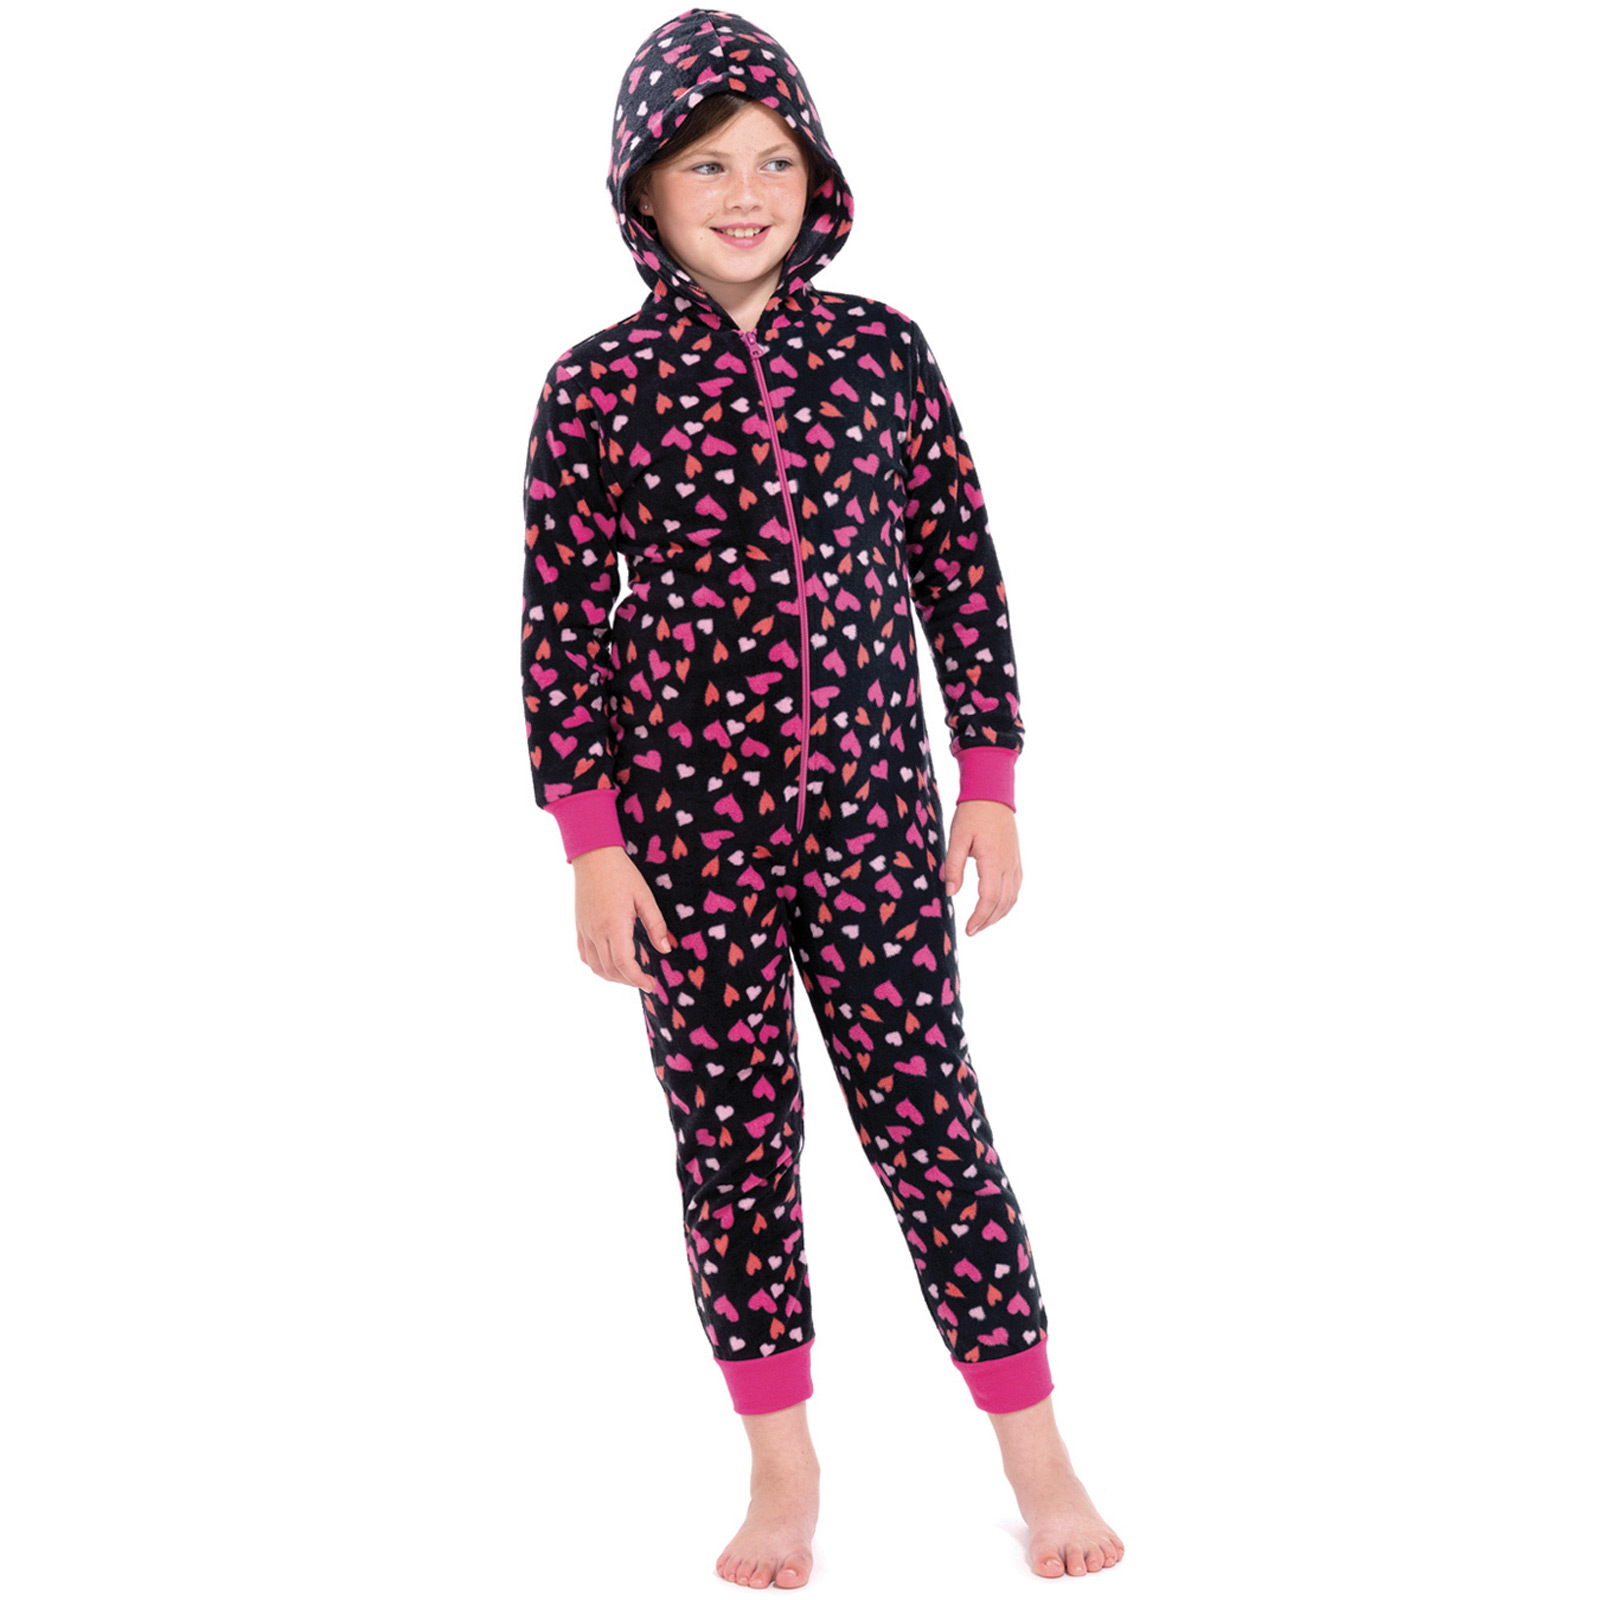 Baby Girls' Sleeper Pajamas, Zip Front Non-Slip Footed Sleeper PJs, 100% Organic Cotton